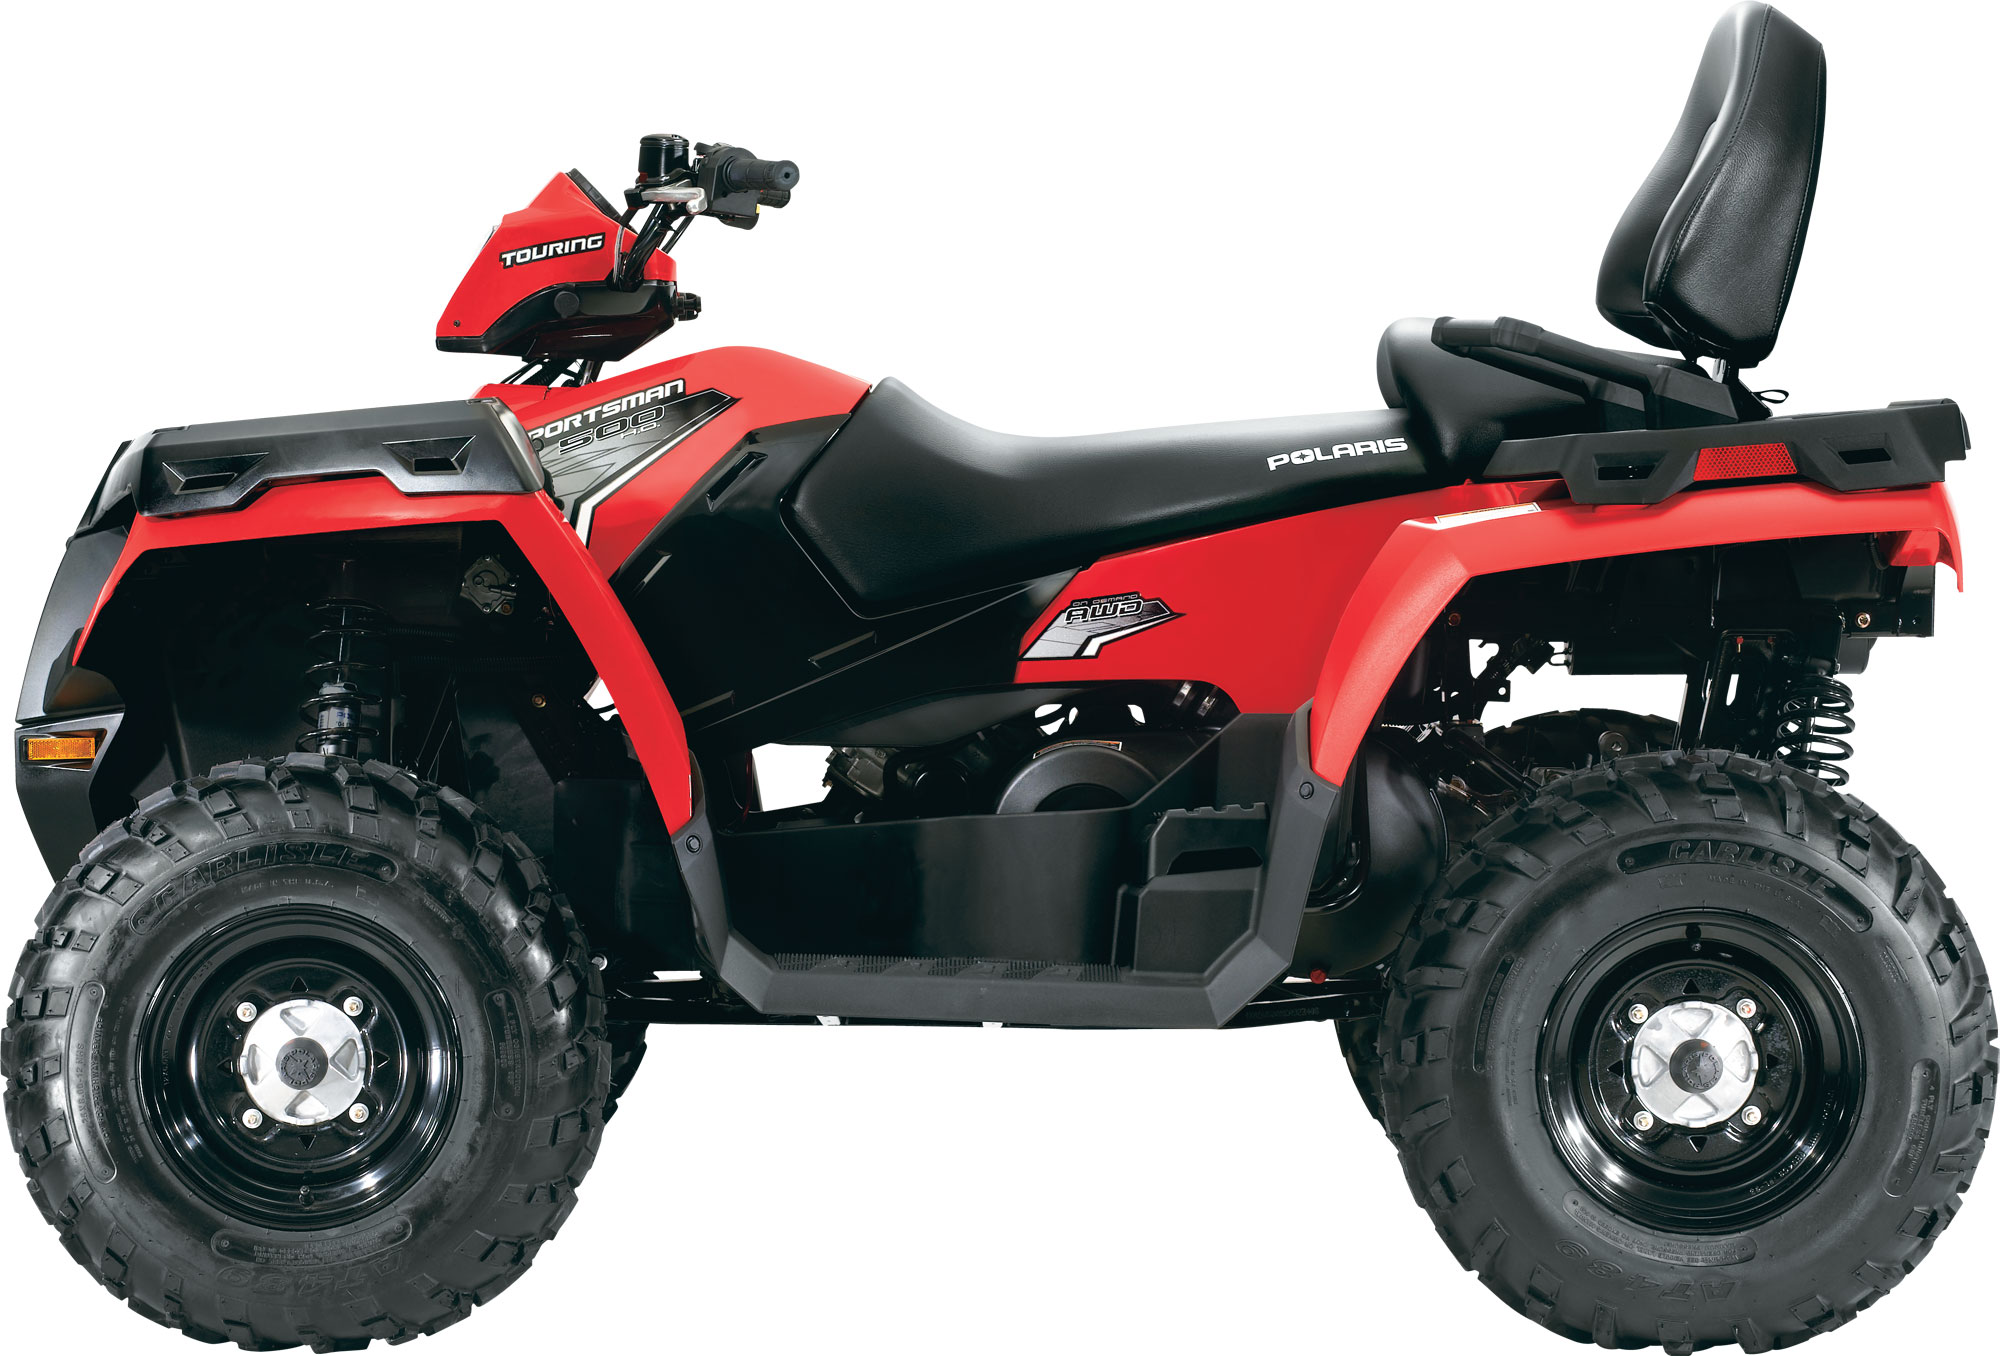 2012 polaris sportsman touring 500 ho review. Black Bedroom Furniture Sets. Home Design Ideas